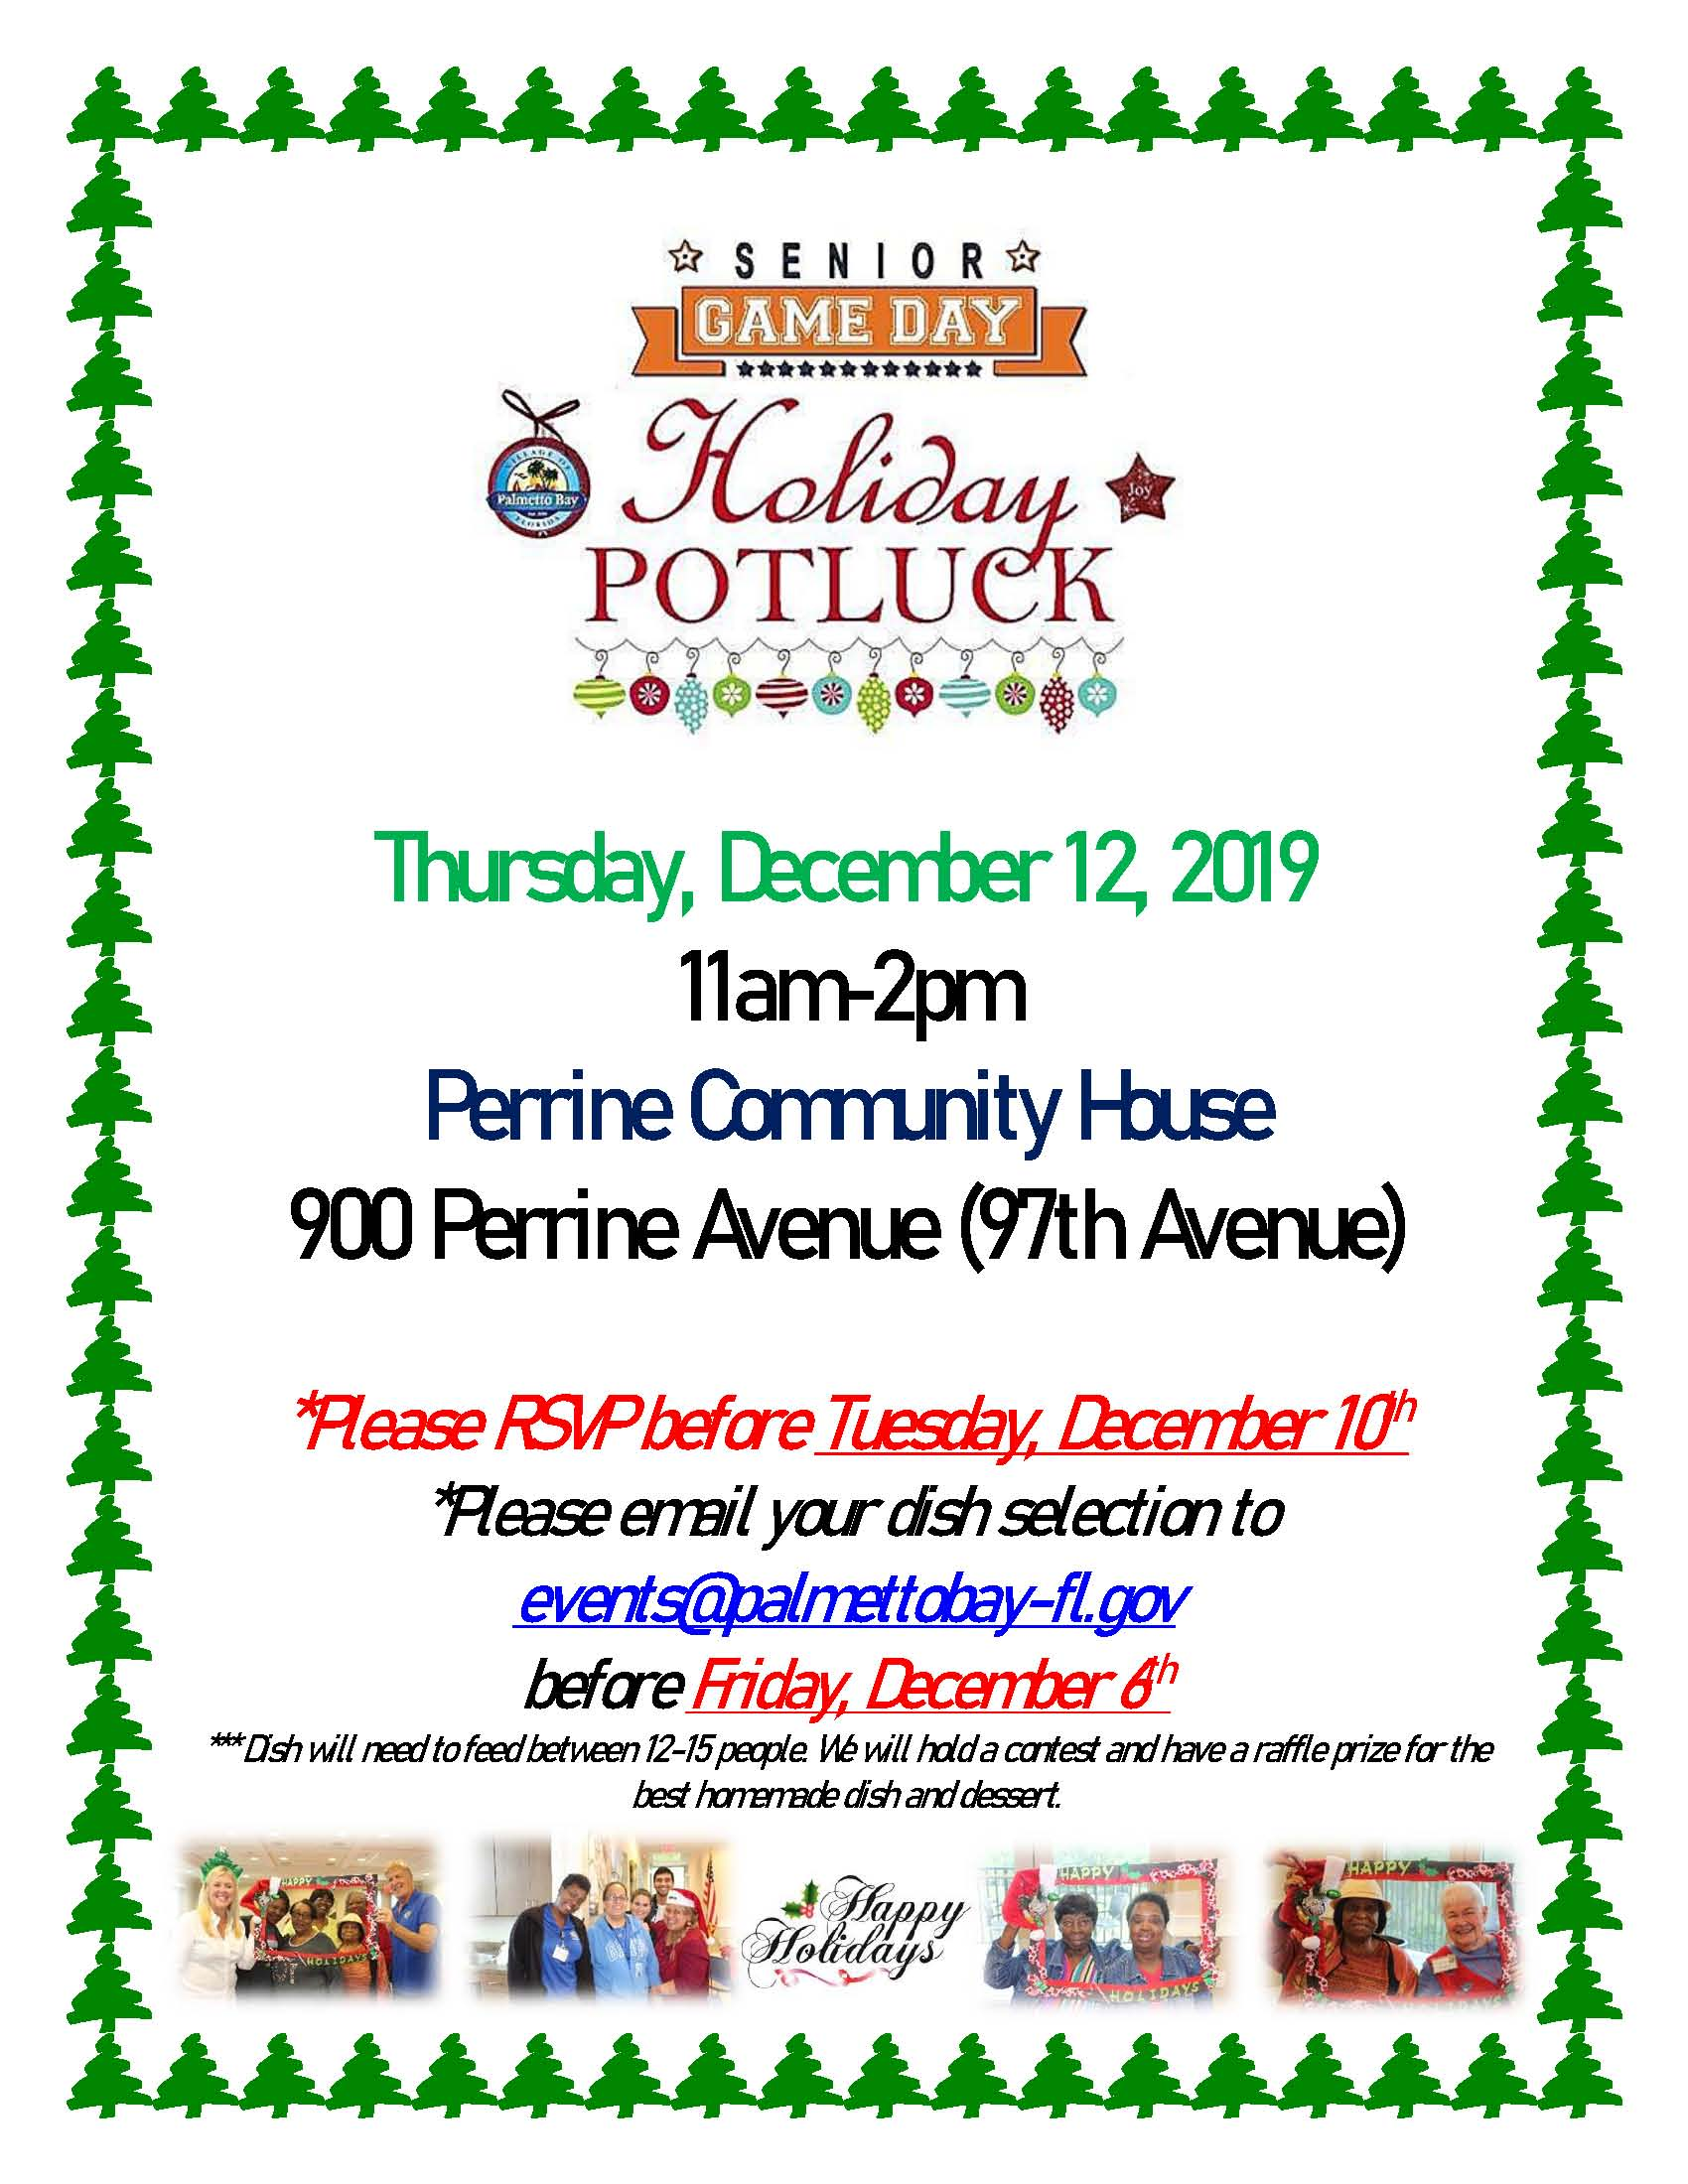 Senior Game Day Holiday Potluck, Thursday, December 12 at Perrine Community House from 11a-2p.  Plea